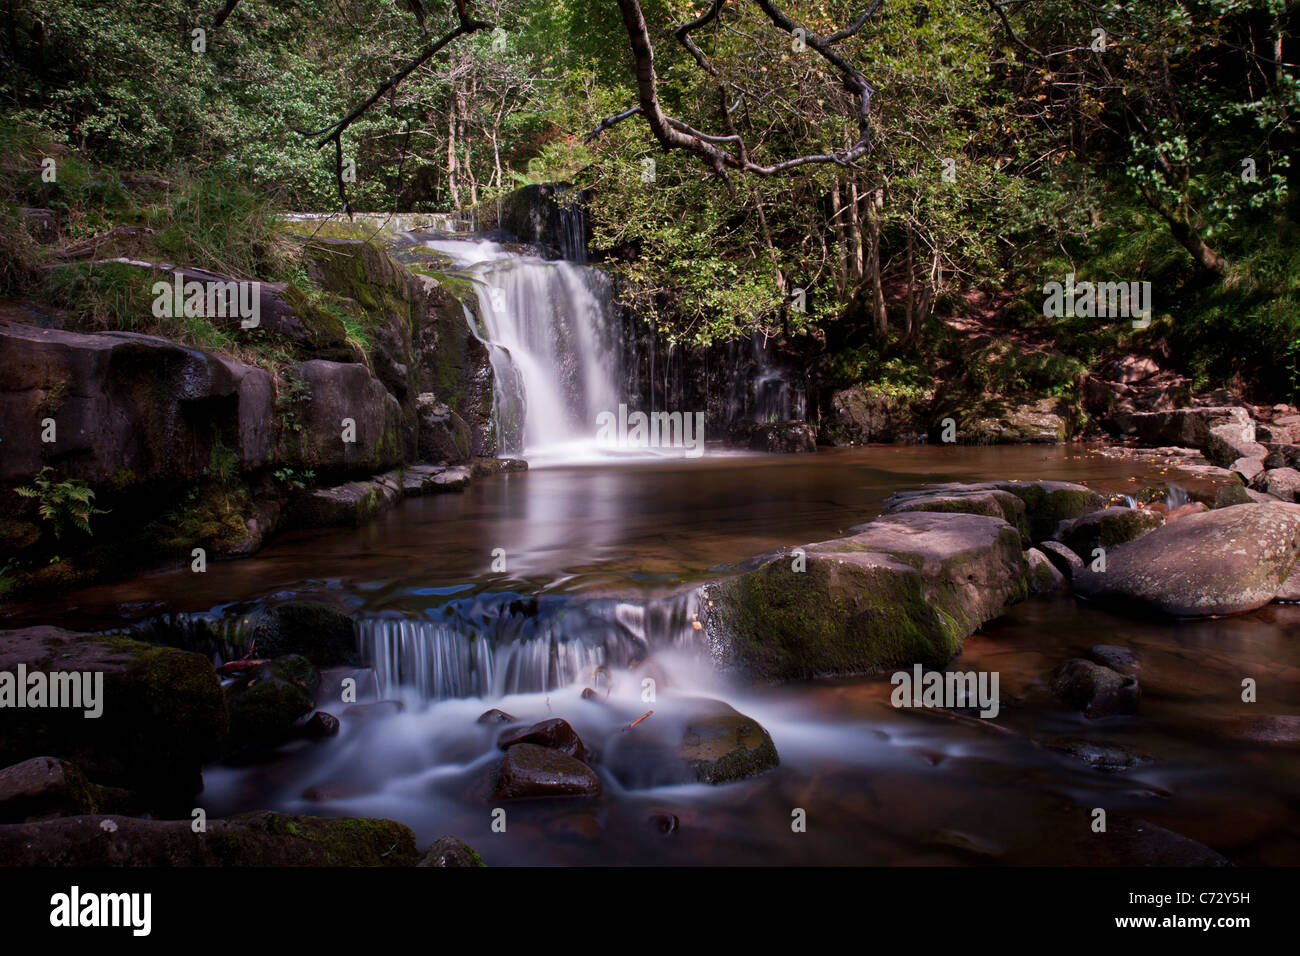 Brecon Becons - Stock Image